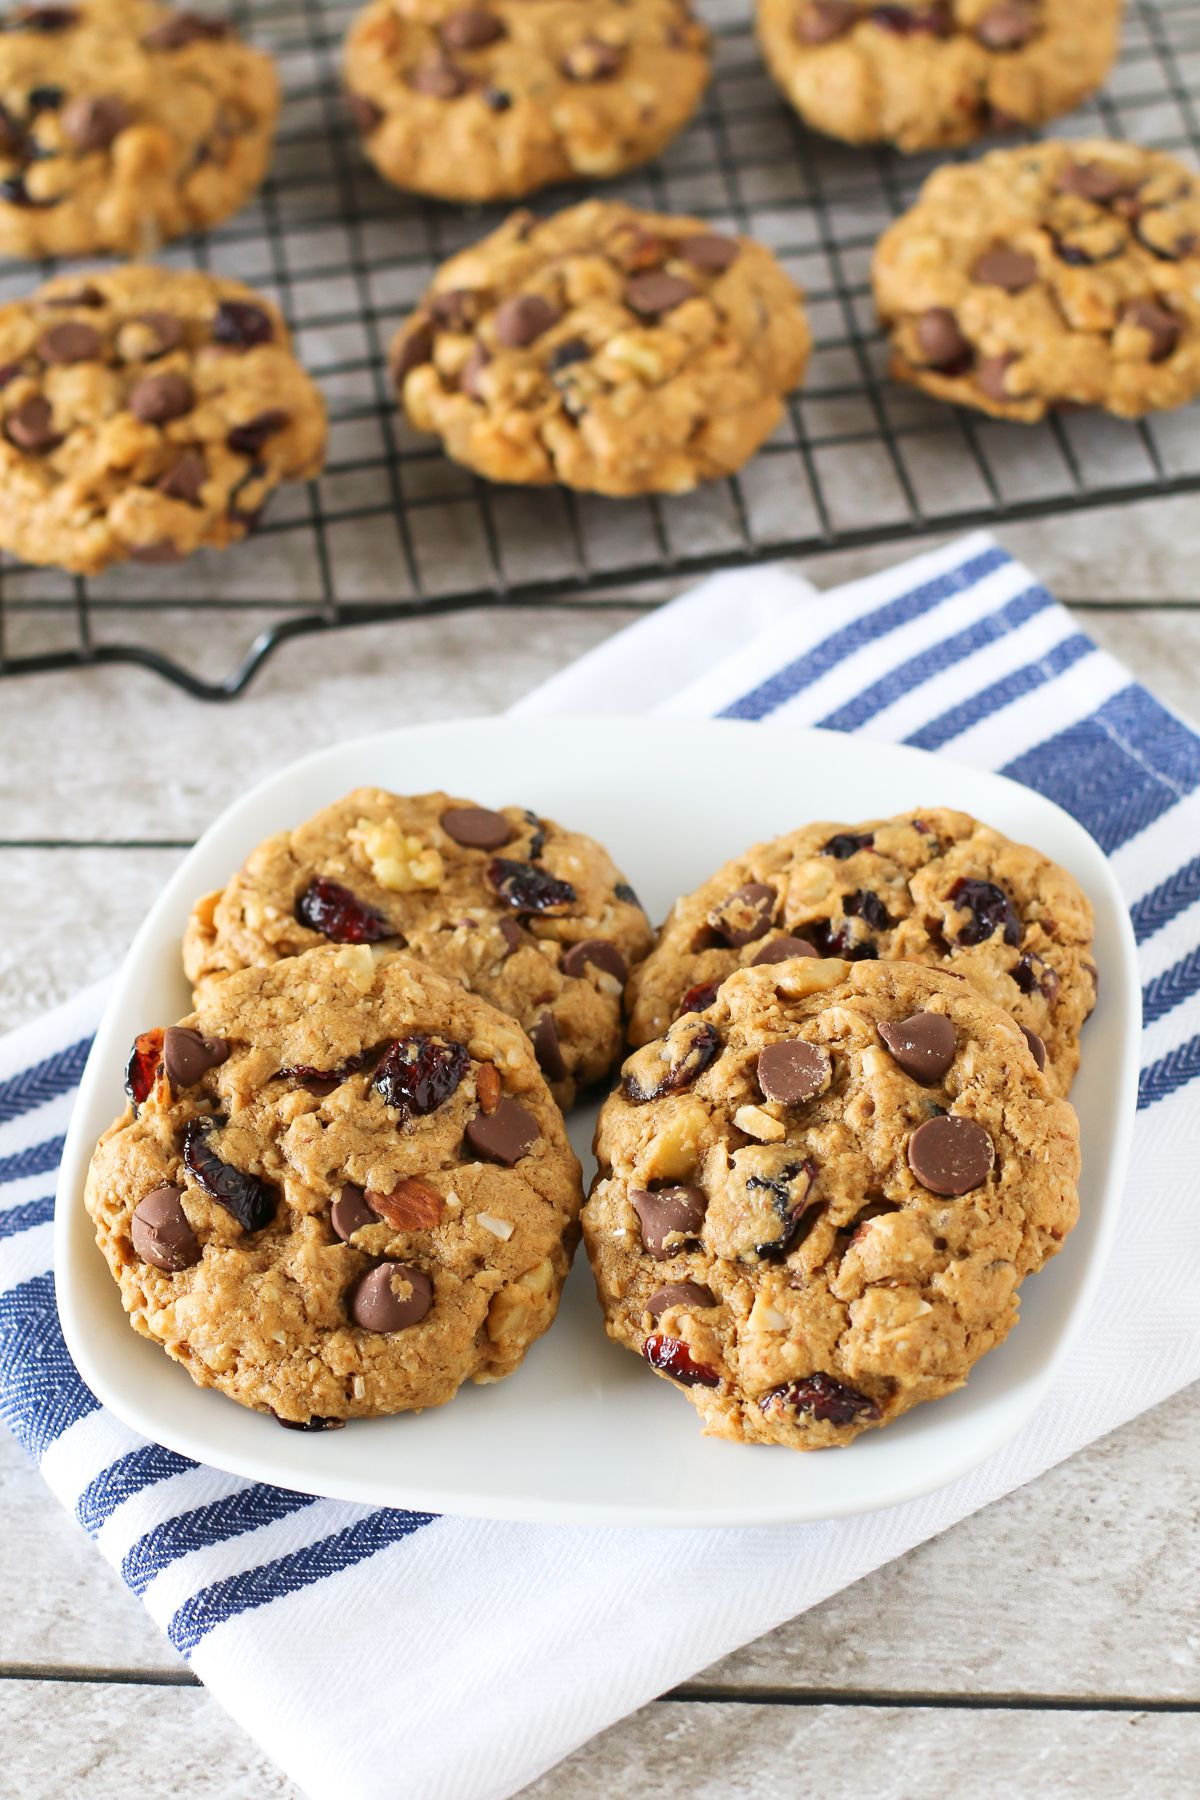 Vegan Oatmeal Chocolate Chip Cookies Fit Mitten Kitchen Recipe In 2020 Oatmeal Chocolate Chip Cookies Vegan Oatmeal Chocolate Chip Cookies Dairy Free Recipes Easy